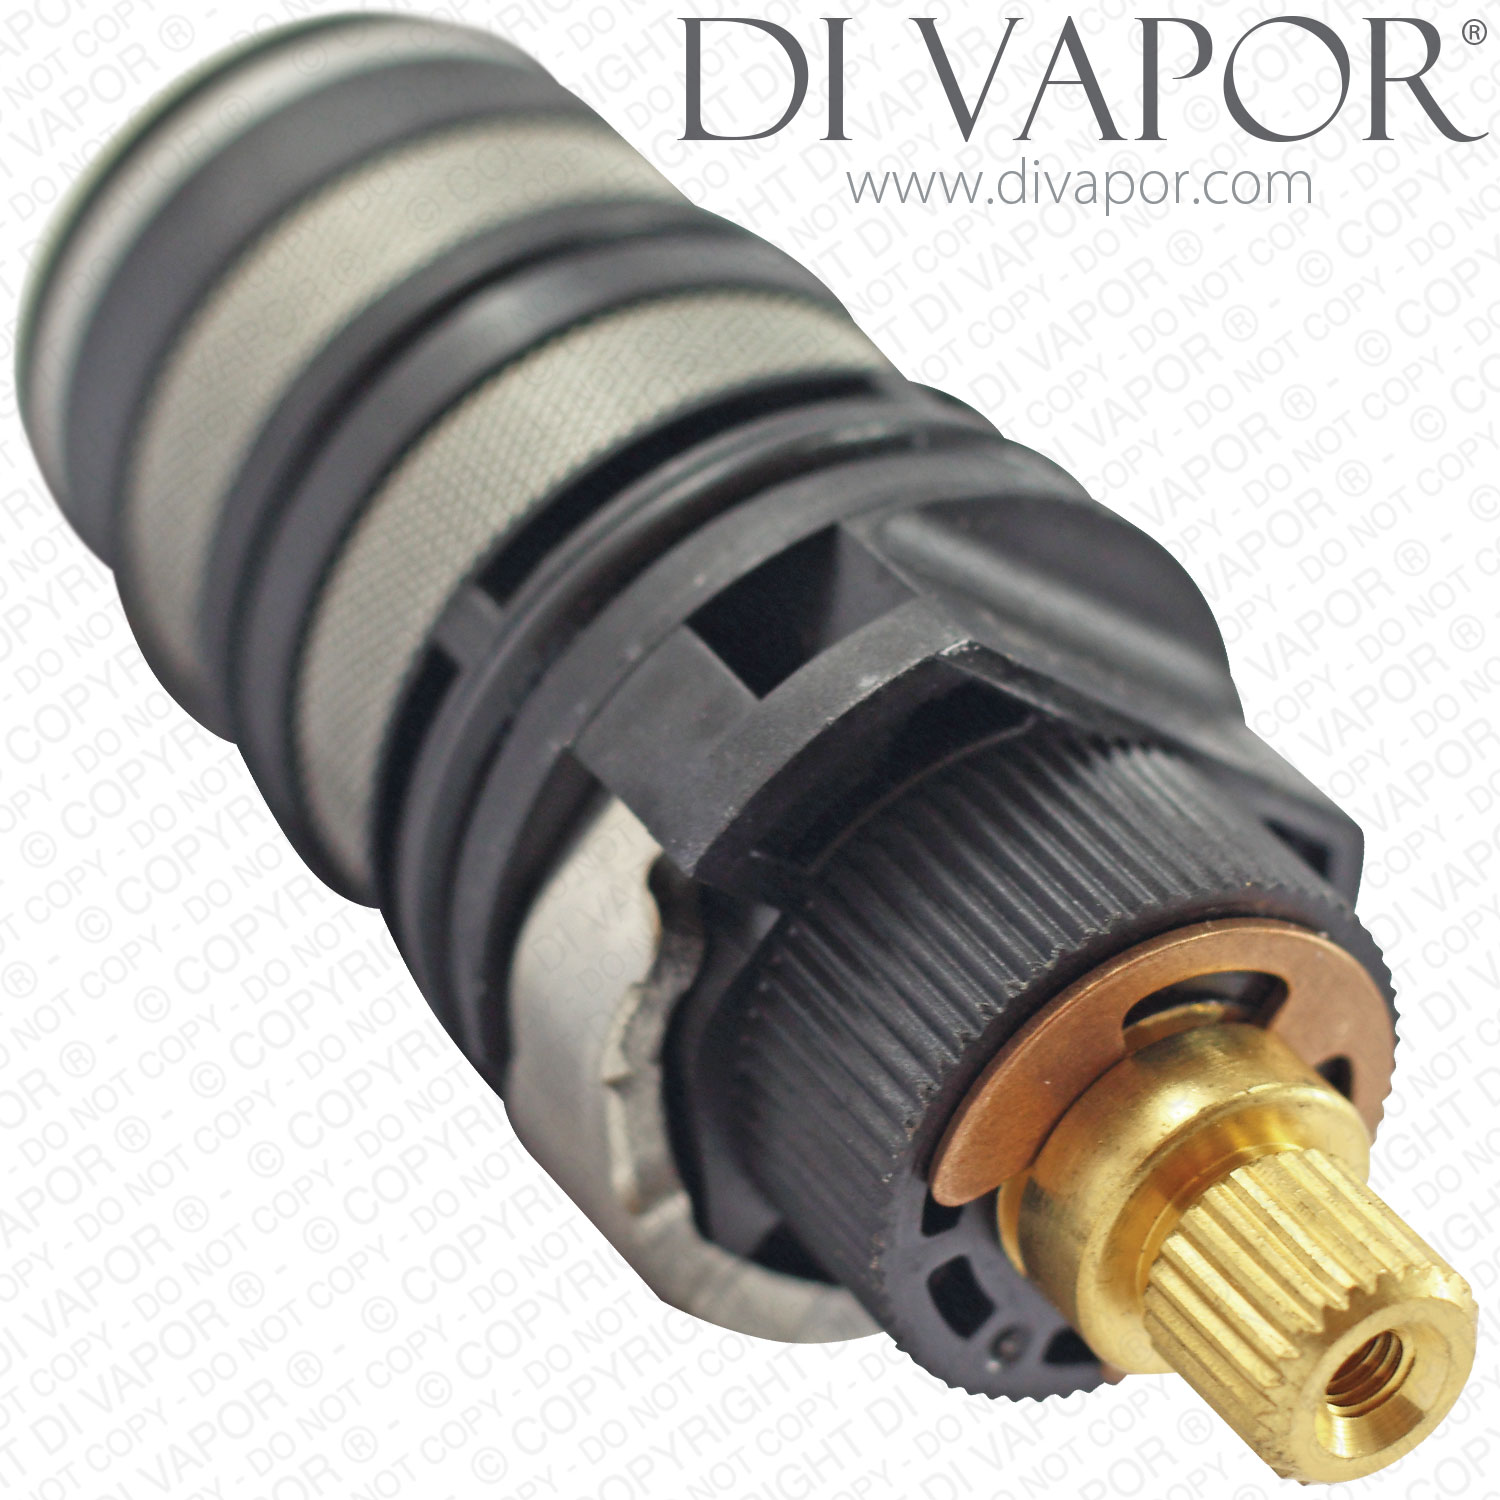 thermostatic cartridge for hudson reed ultra ap392 sa398tfa luxor dream shower retrofit. Black Bedroom Furniture Sets. Home Design Ideas